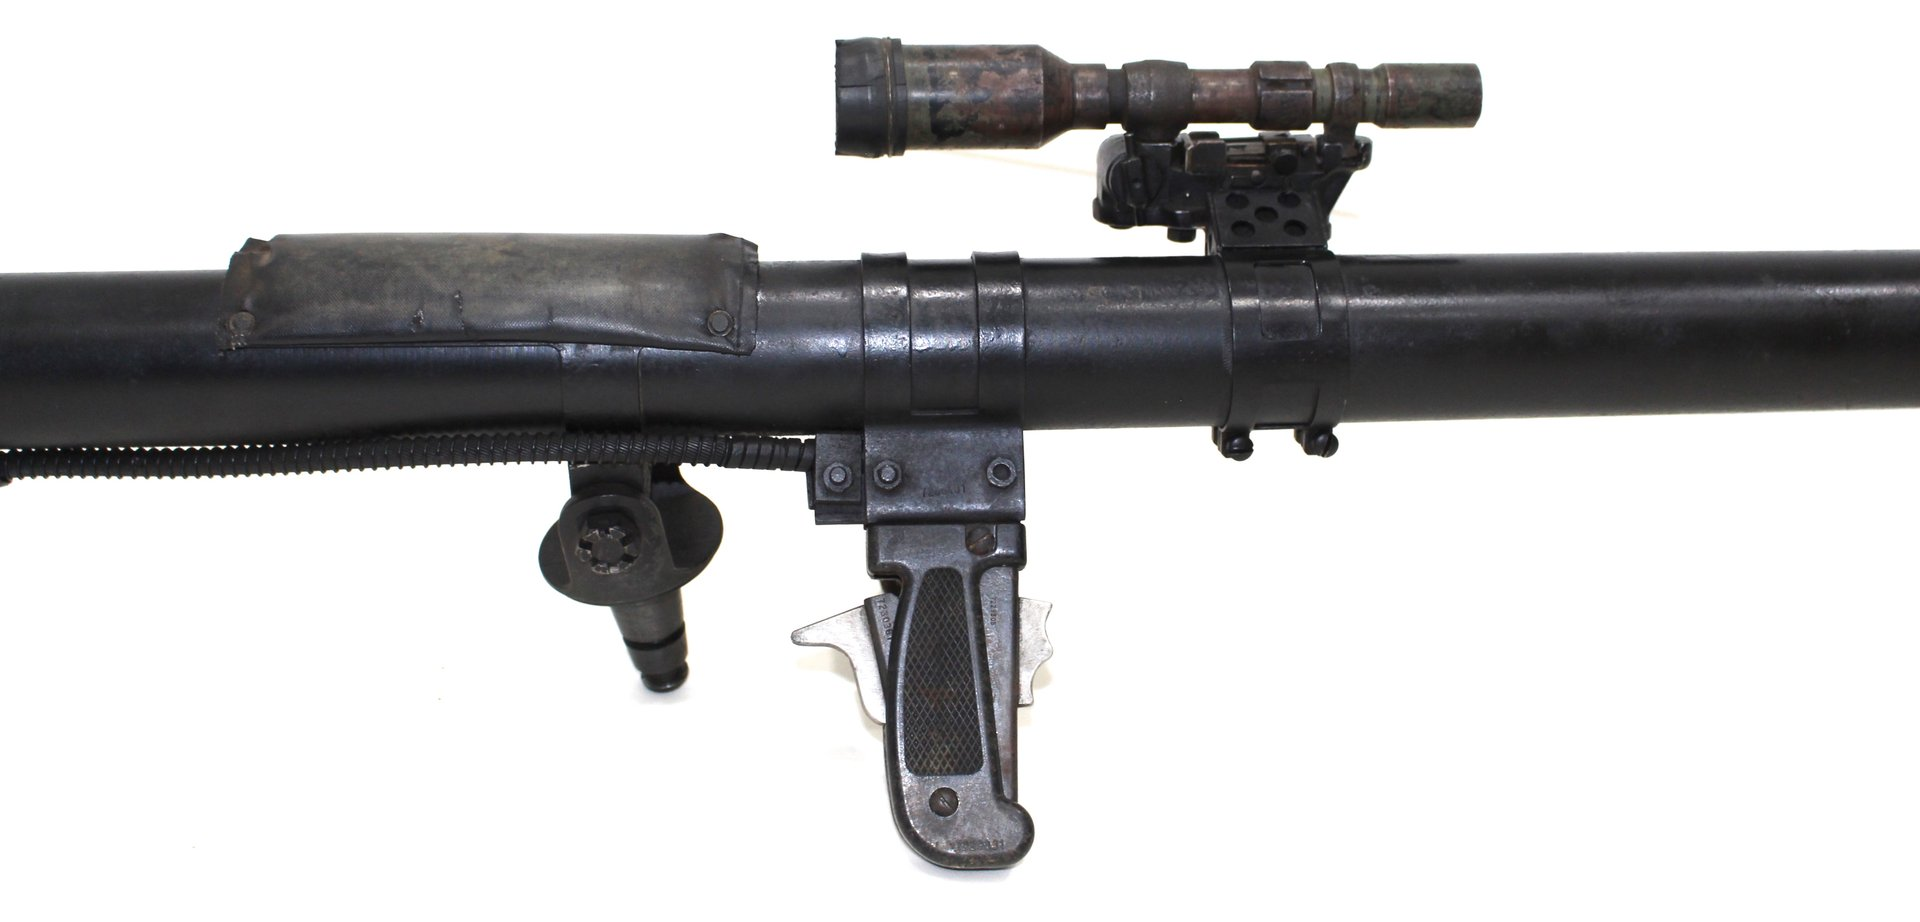 M18 57mm Recoilless Rifle Backgrounds, Compatible - PC, Mobile, Gadgets| 1920x922 px